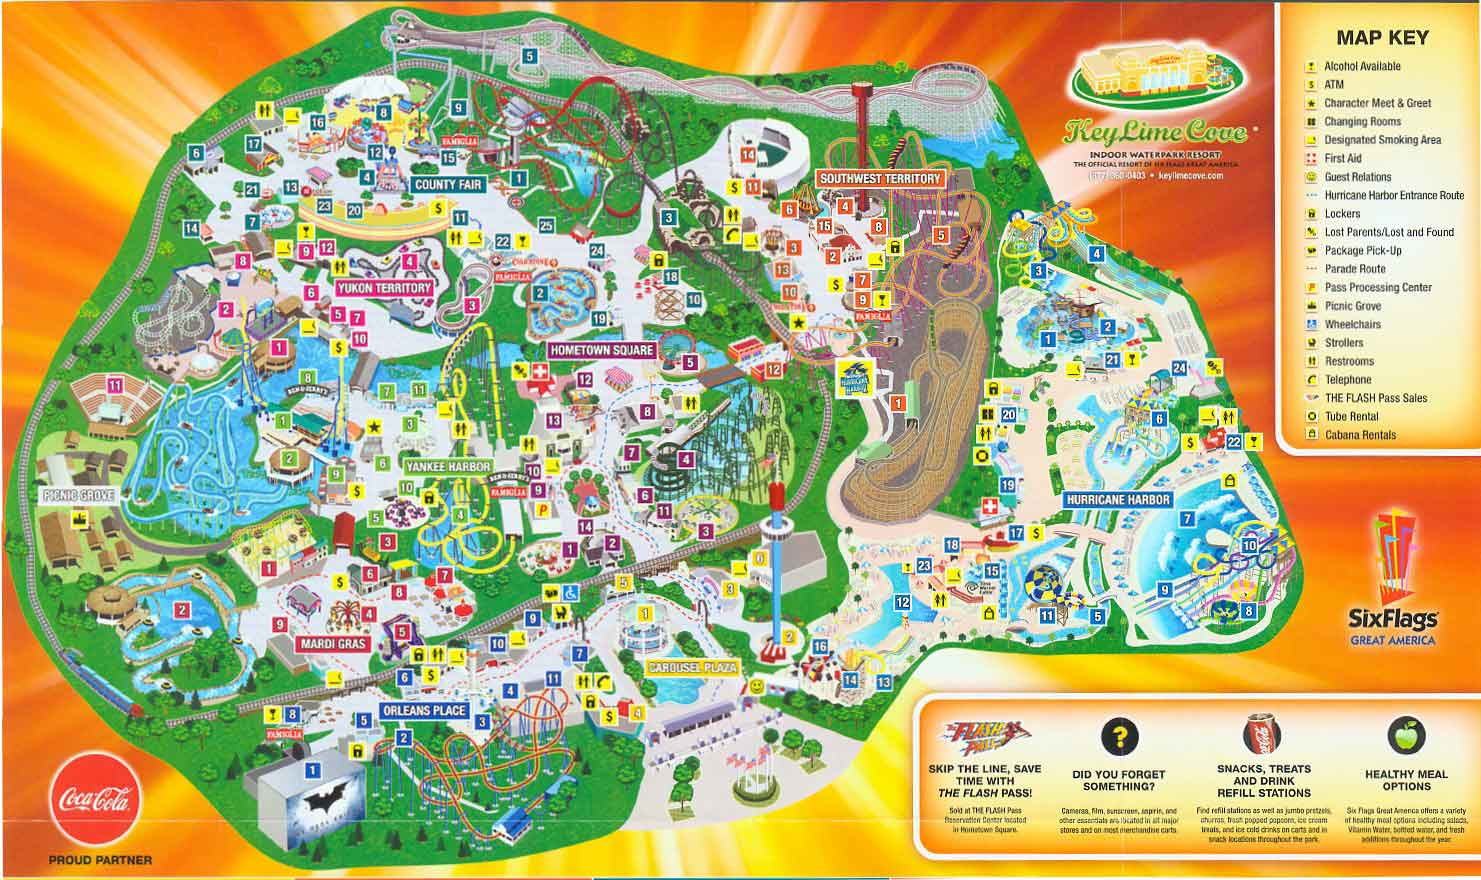 Map Of 6 Flags Great America.Six Flags Great America 2012 Map